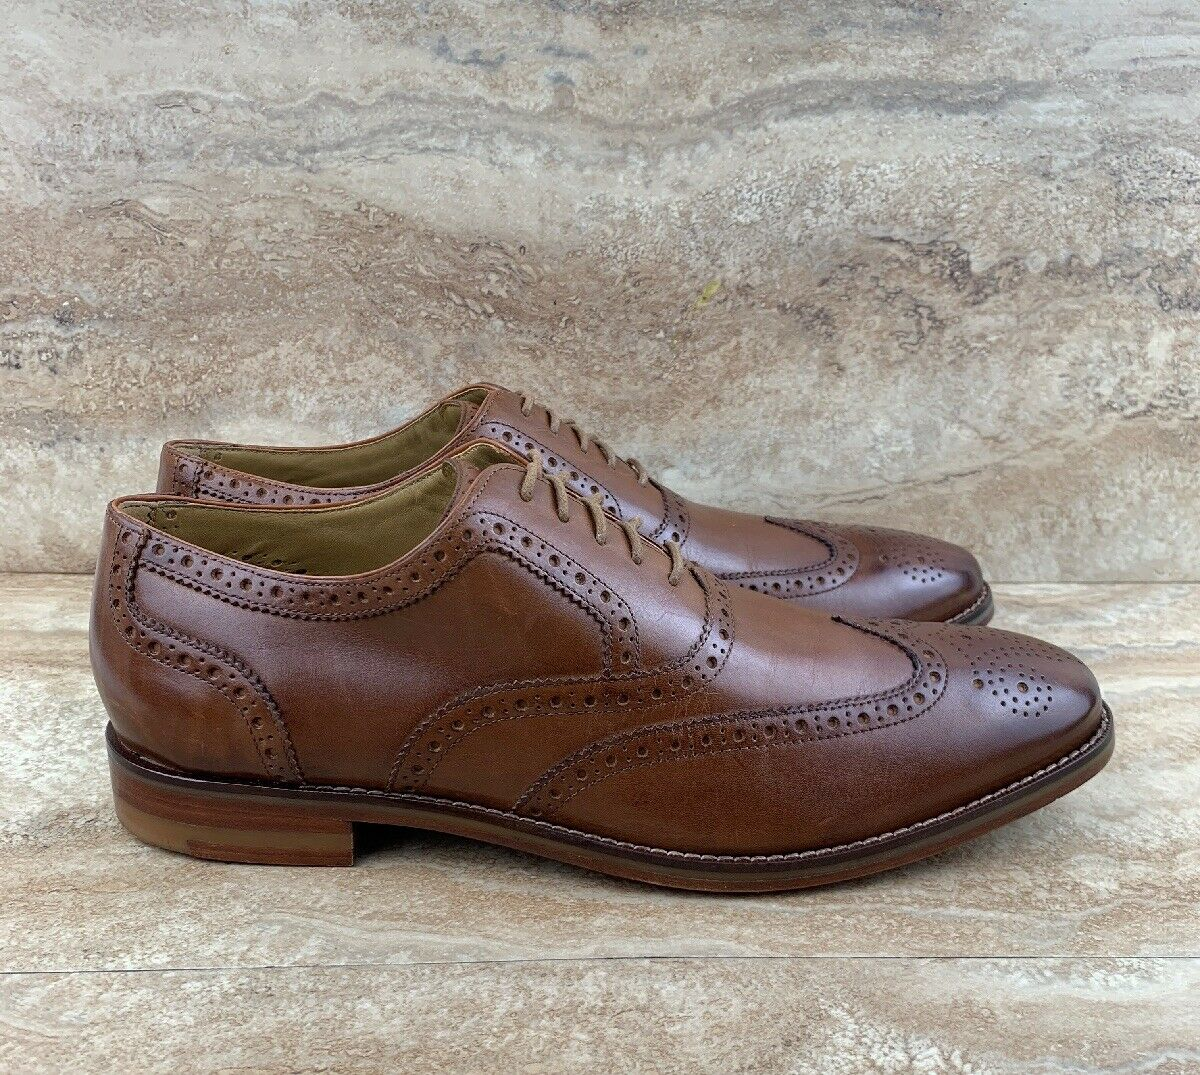 Cole Haan 'Cambridge' Wingtip Oxfords British Tan Men's shoes